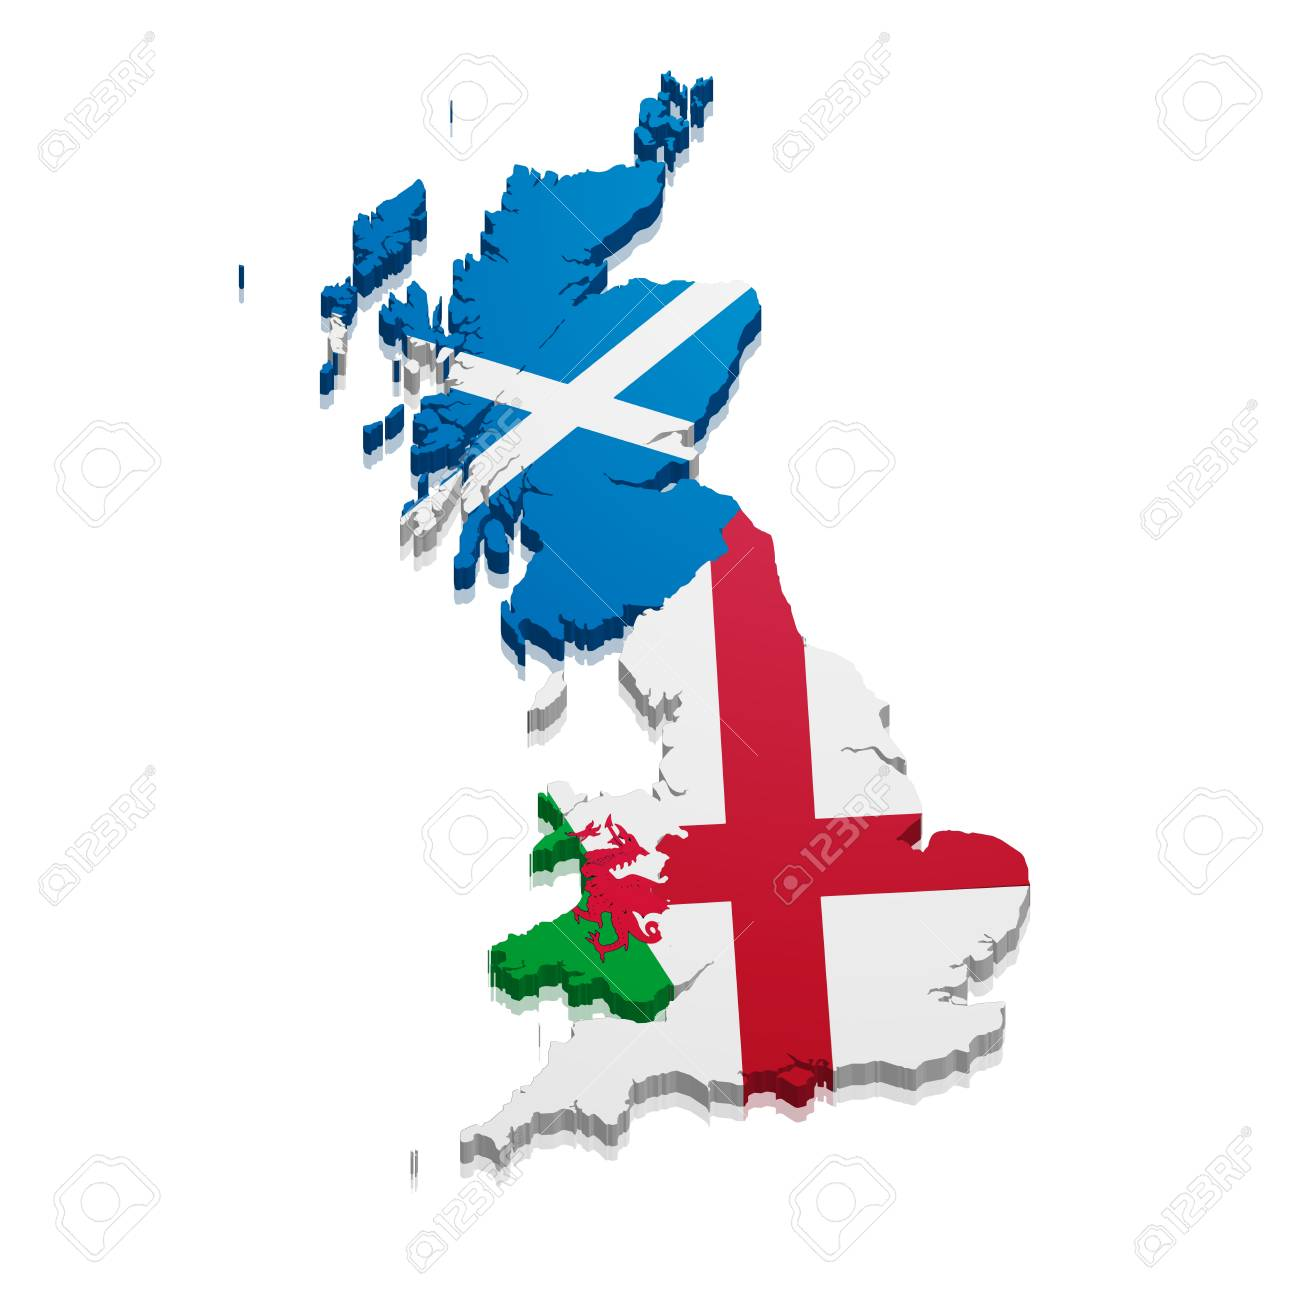 Map Of Scotland Wales And England.Detailed Illustration Of A Map Of England Scotland And Wales